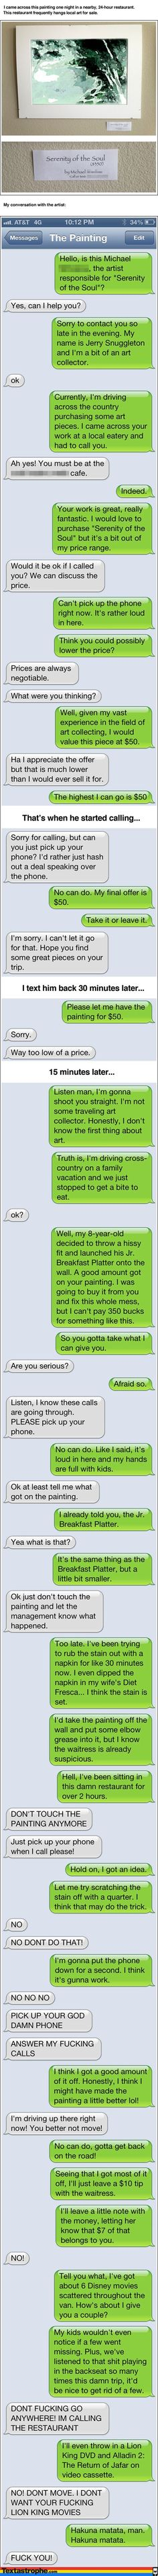 The Painting - 9 funniest texting pranks